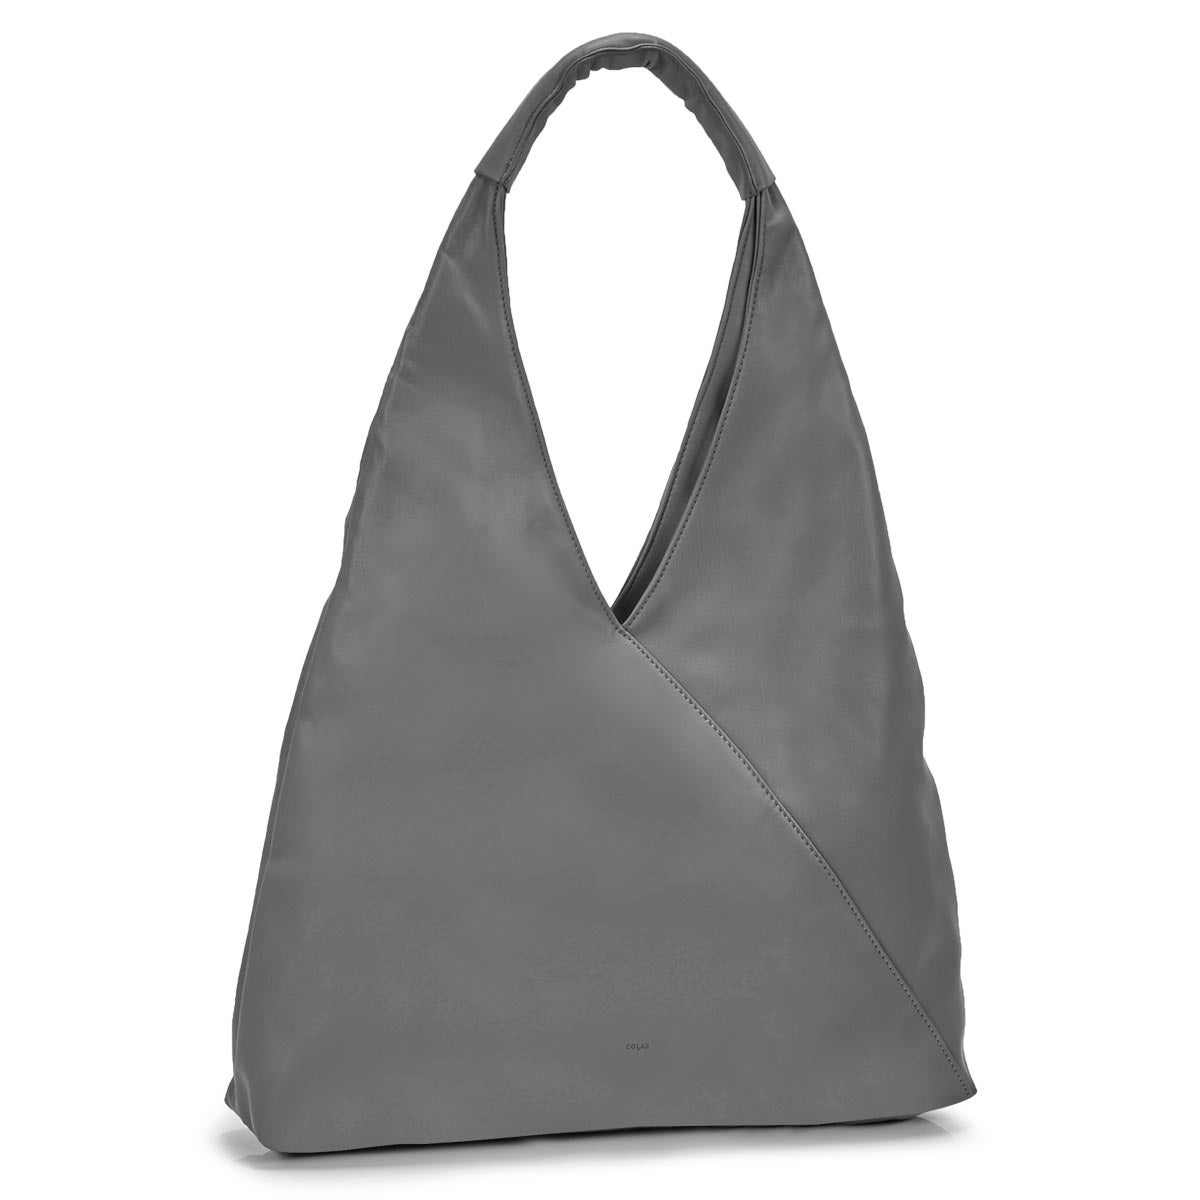 Women's ALEXIS grey triangle hobo bag